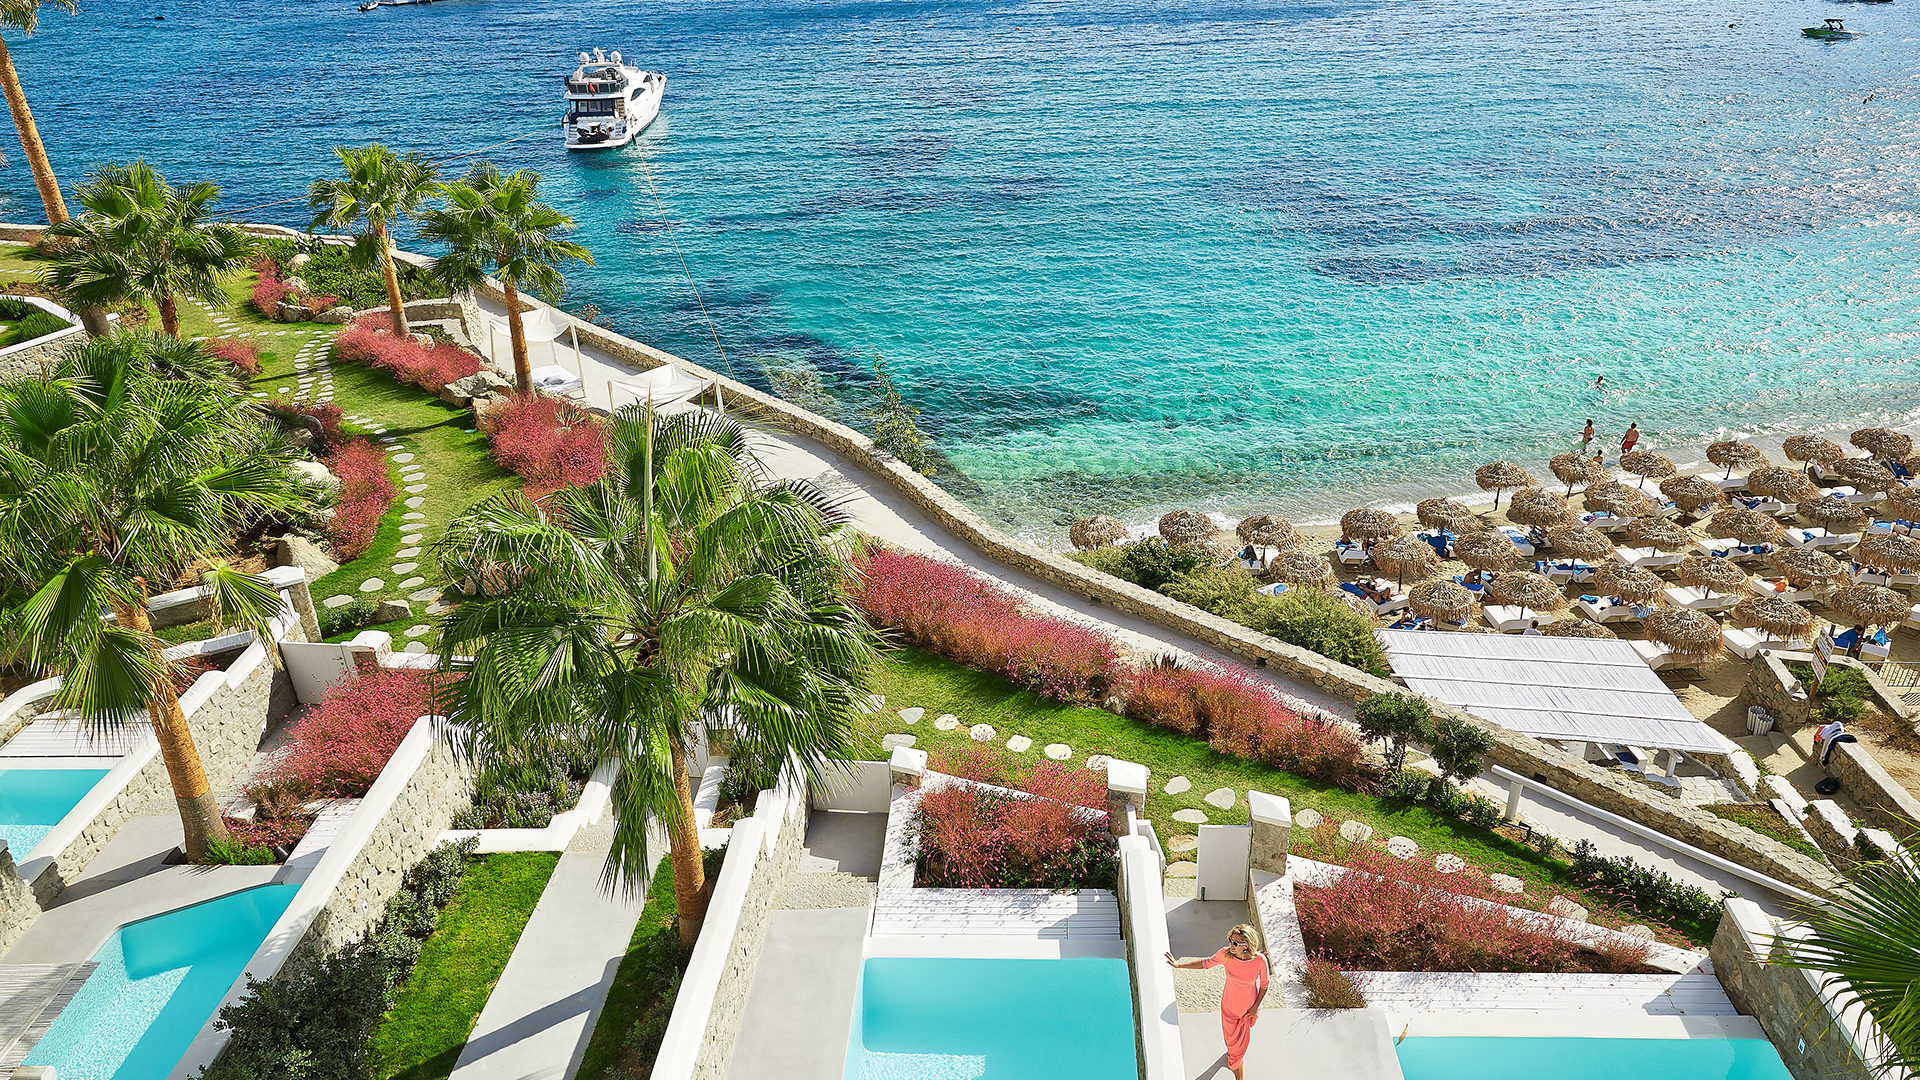 Mykonos_Blu-16-Grand-Blu-Suite-with-Private-Pool,-Aerial-View_72dpi